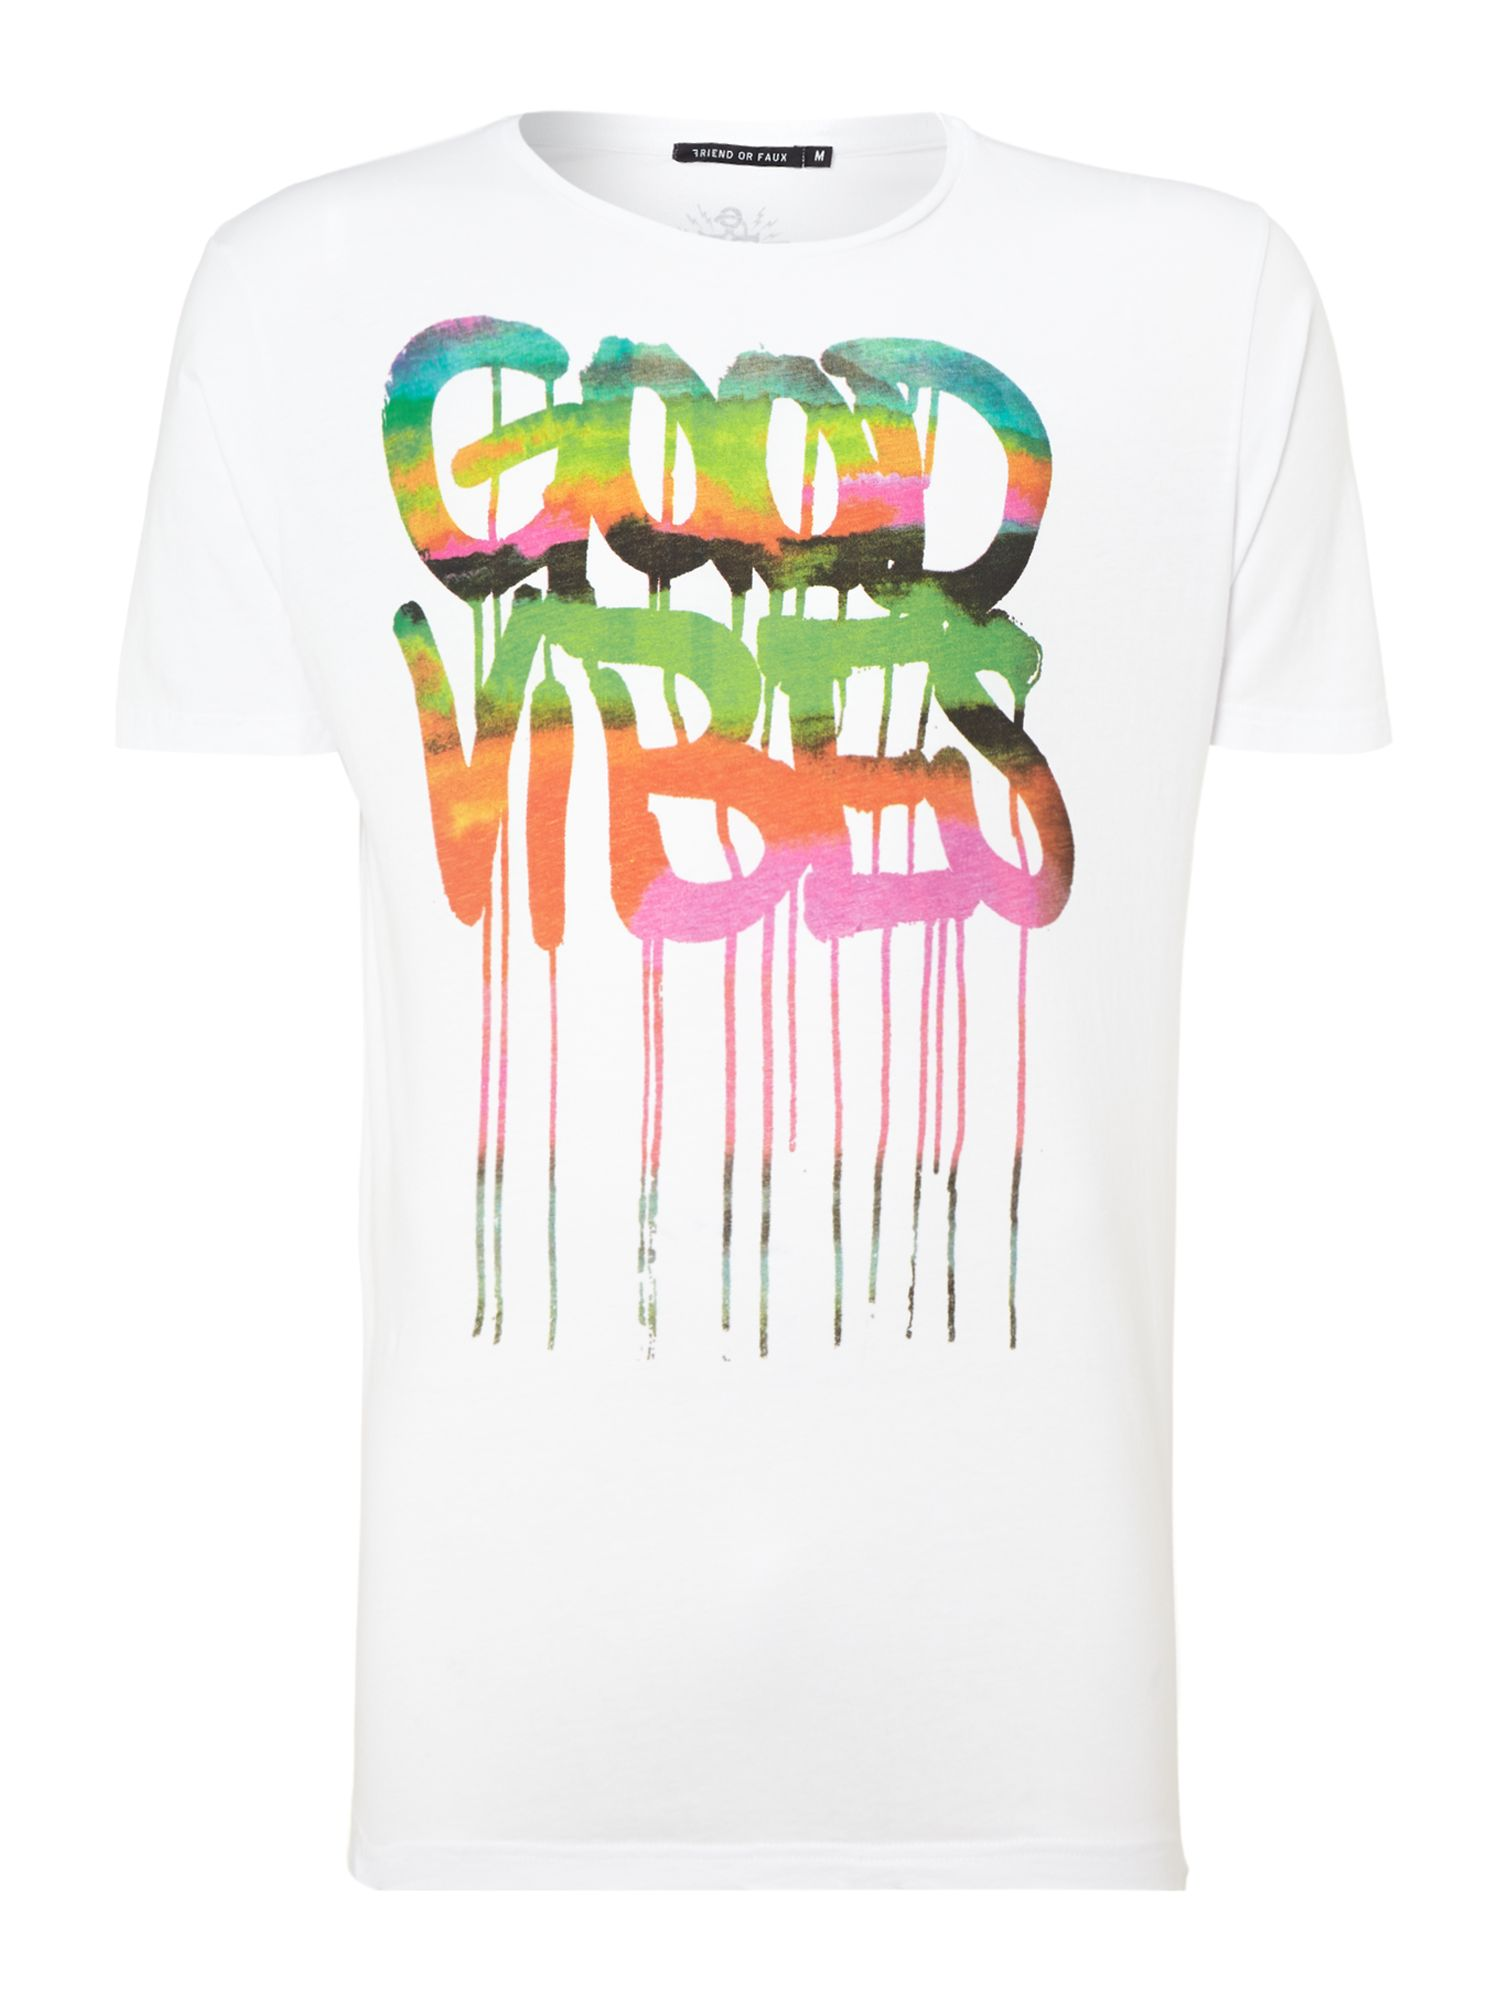 Good vibes print t shirt